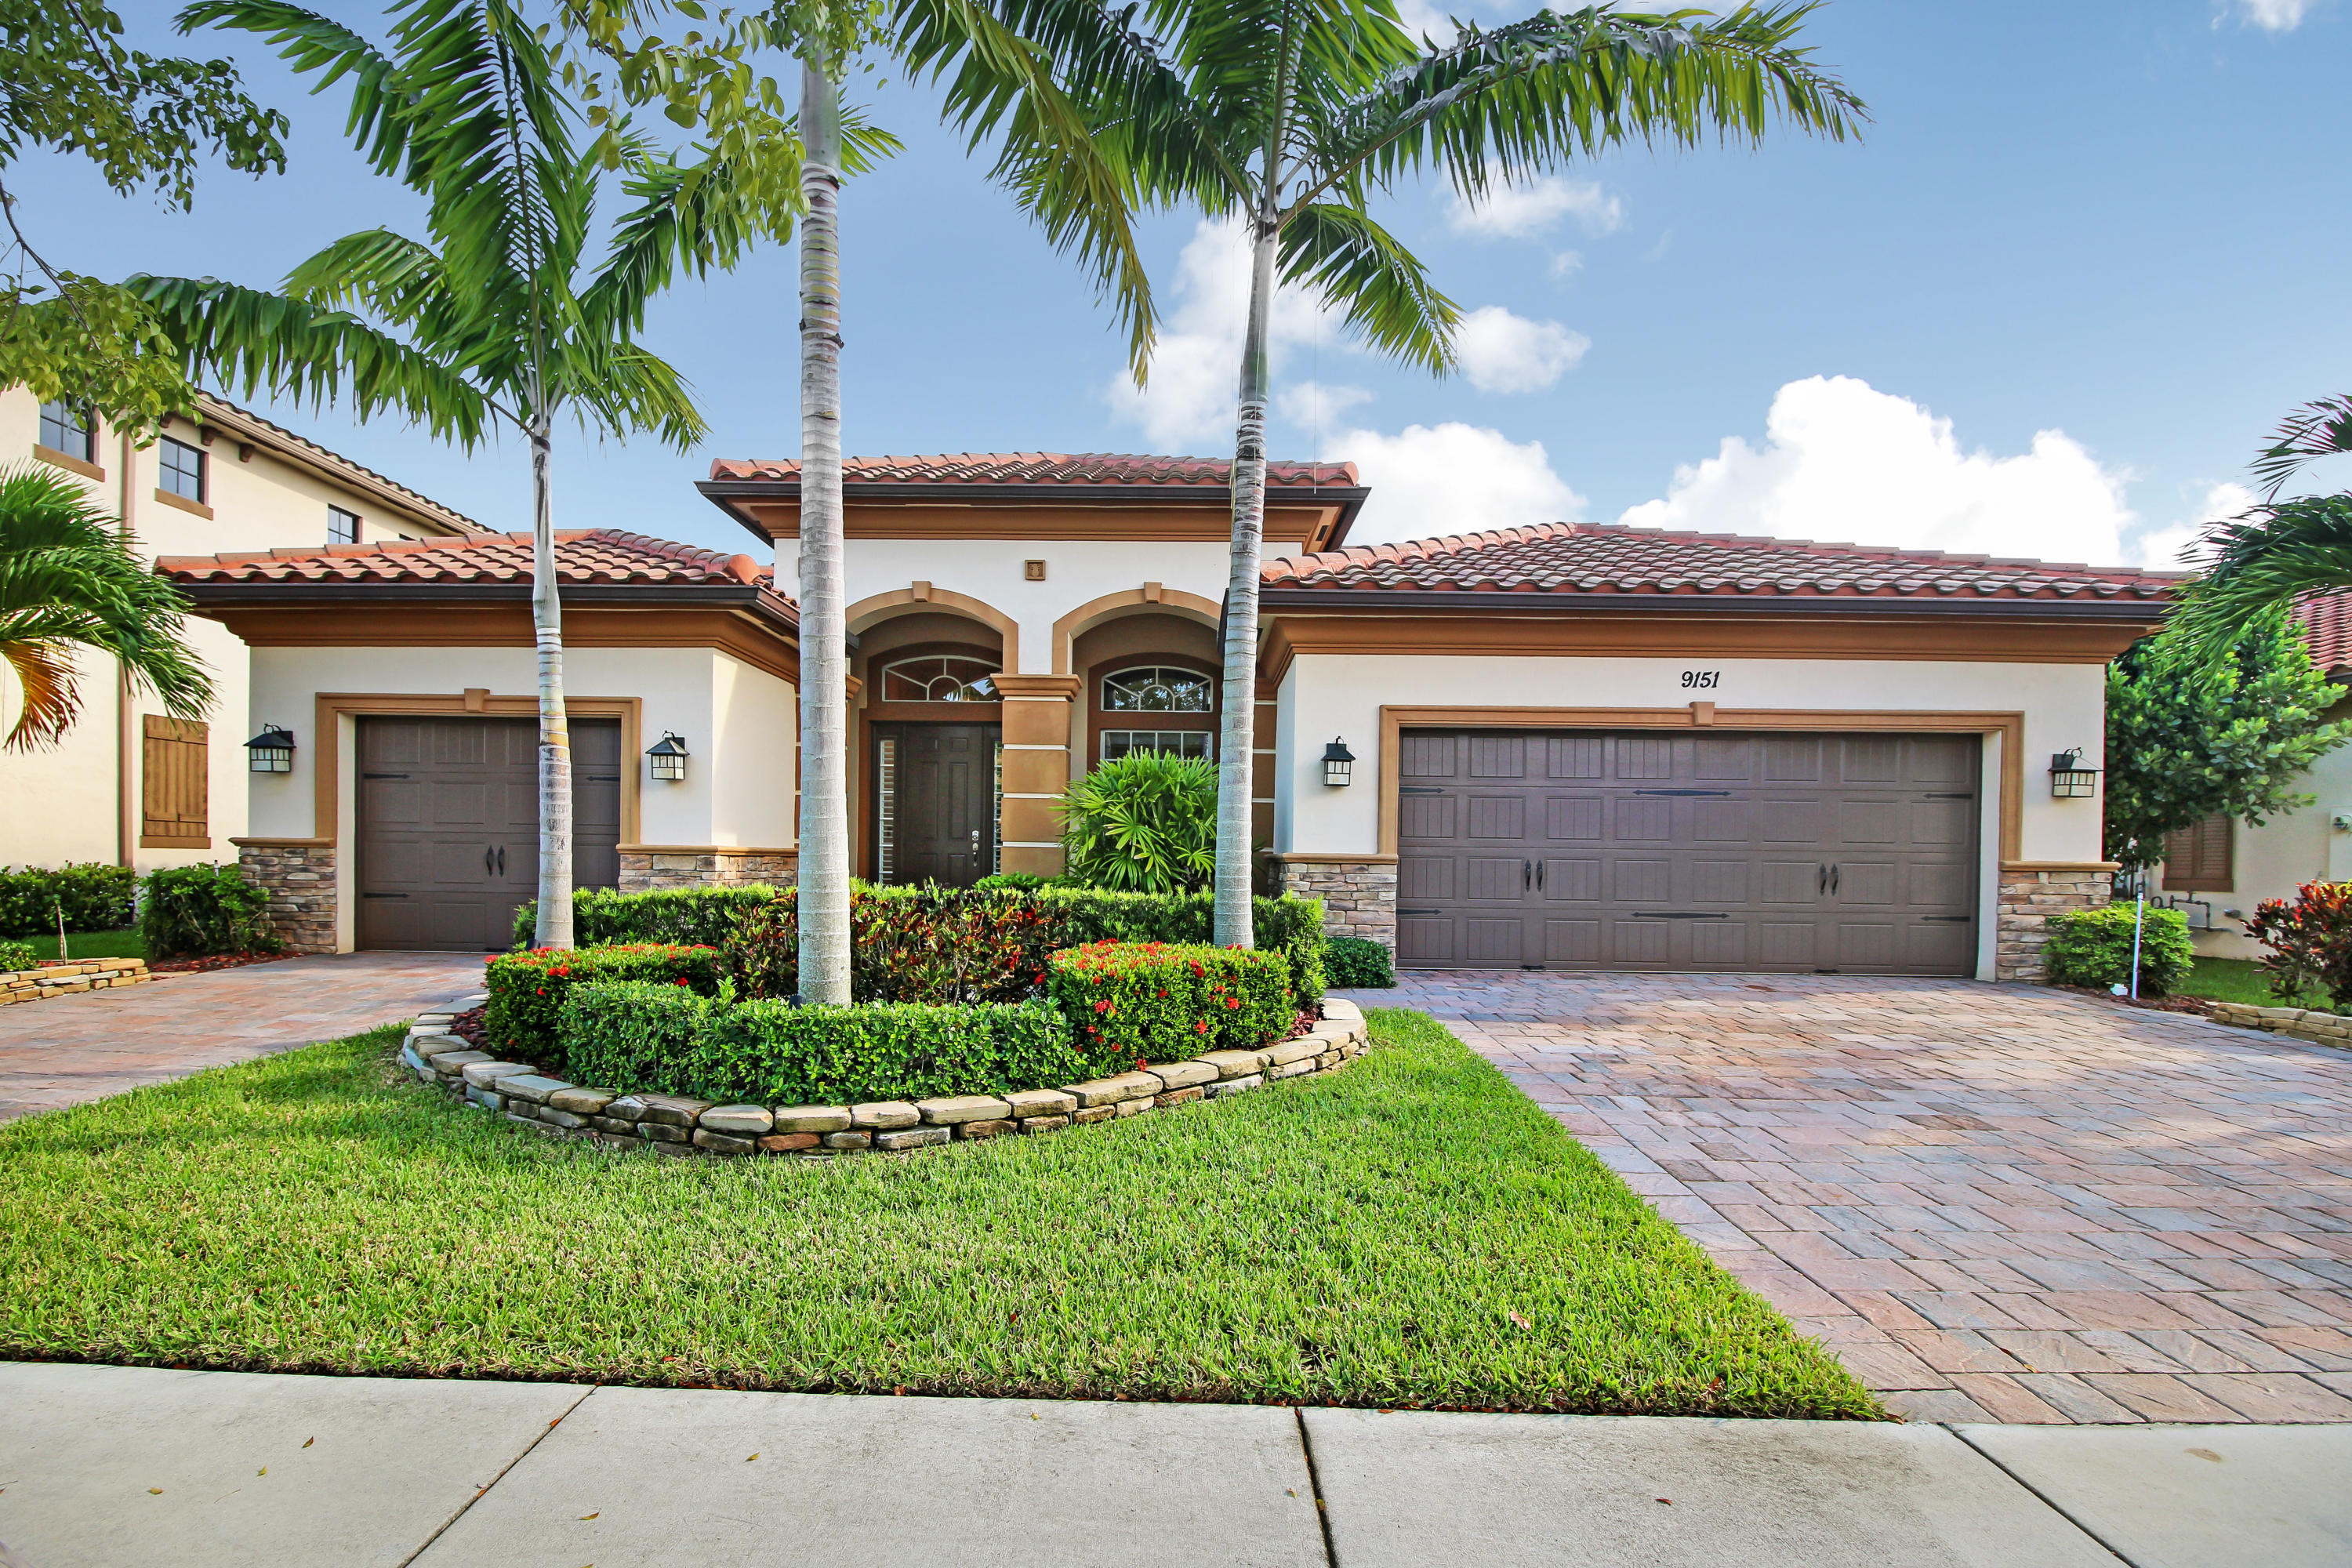 Home for sale in Miralago Parkland Florida